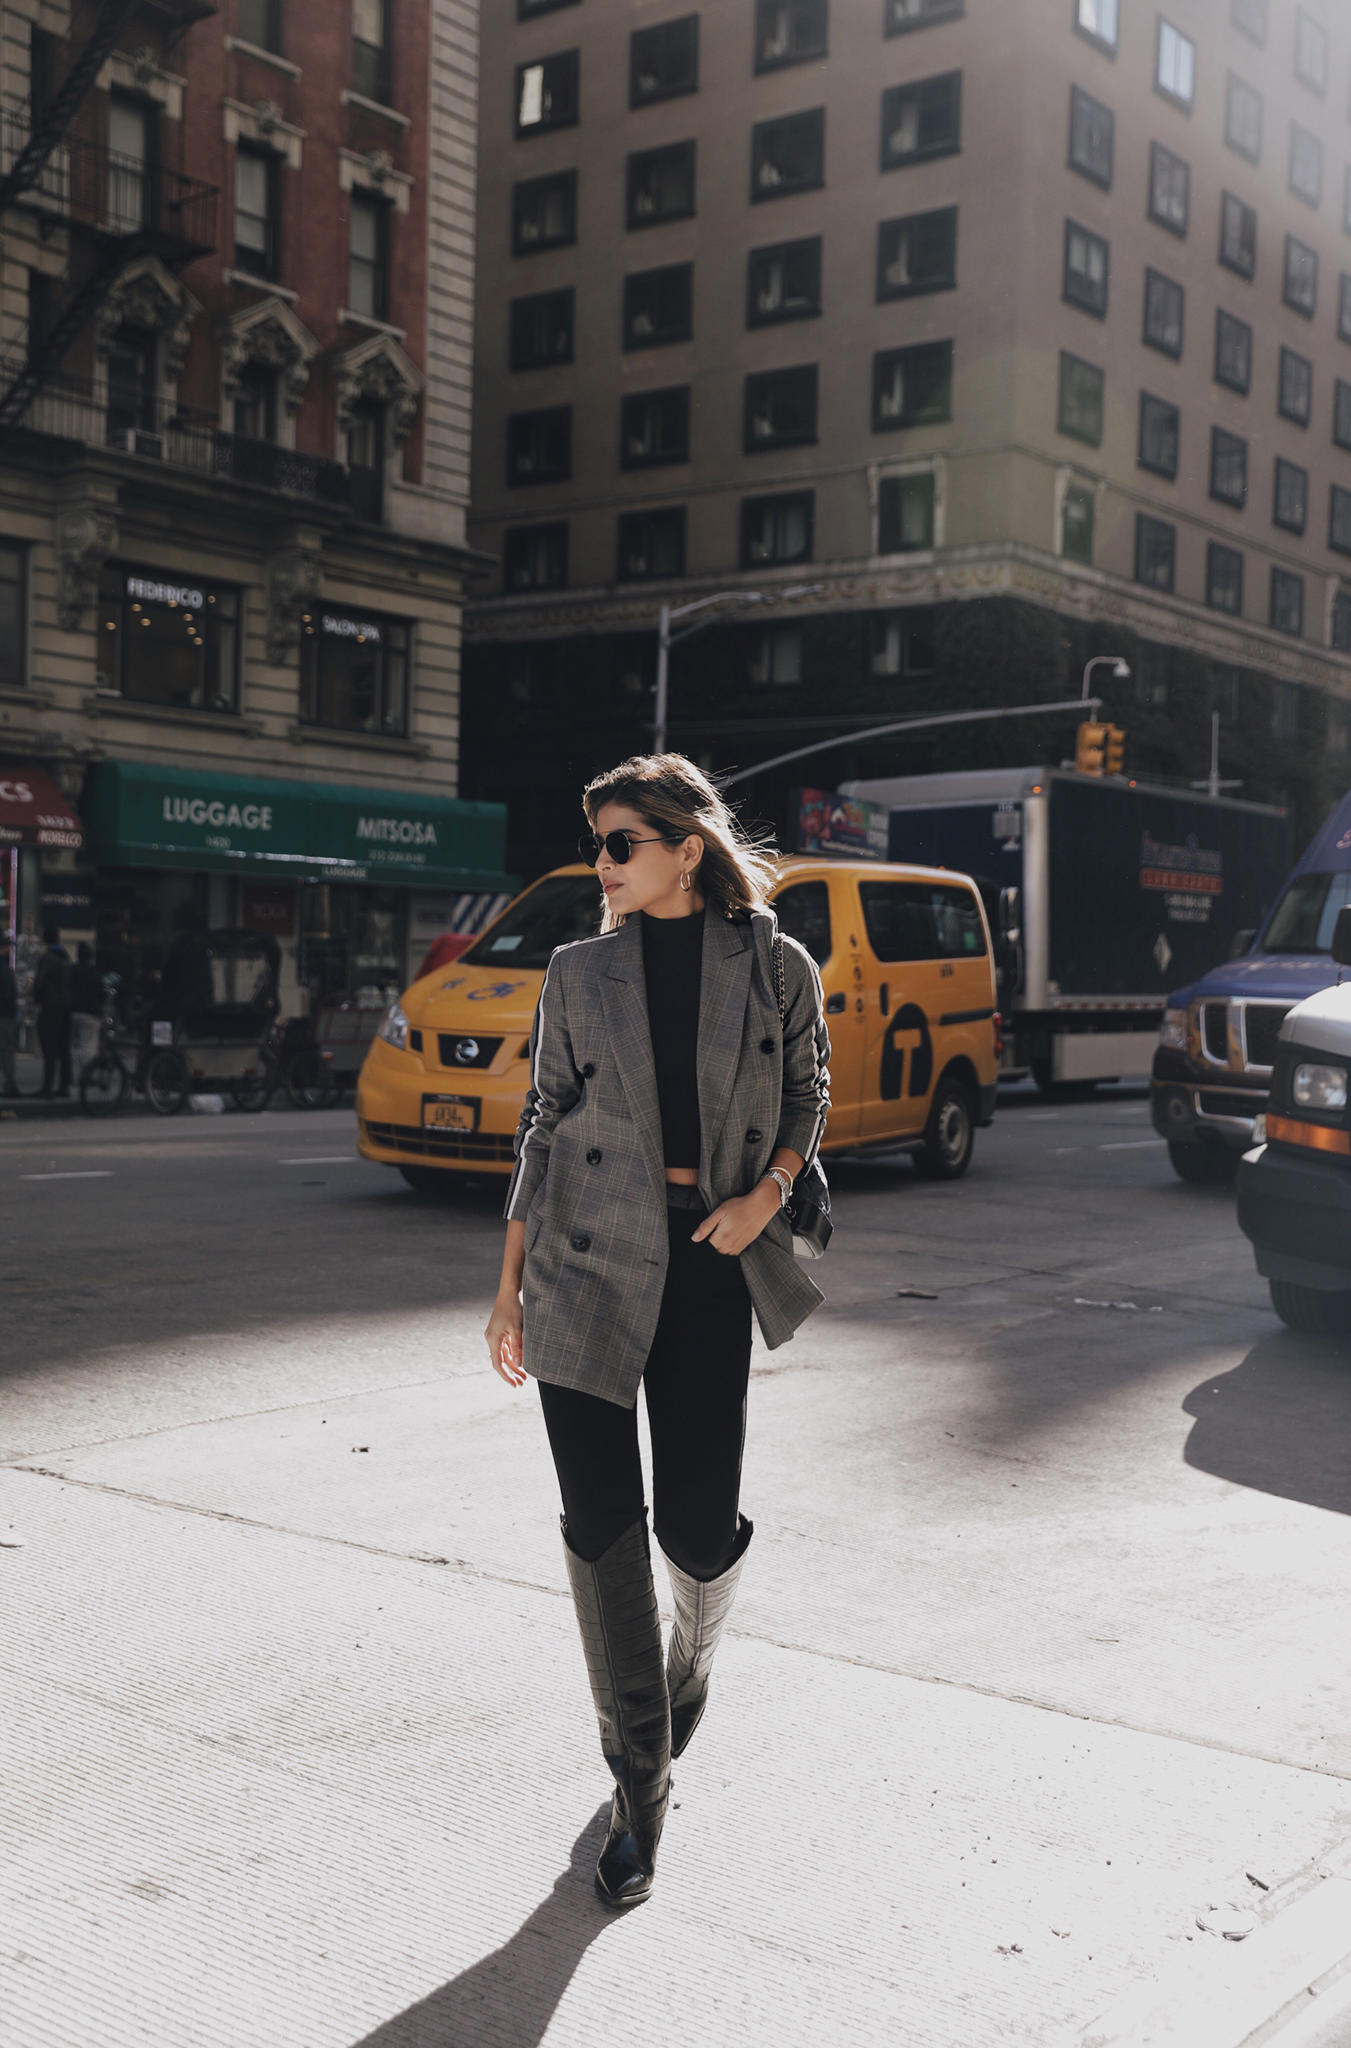 Your Guide to the Best Fall Boots by Pam Hetlinger | TheGirlFromPanama.com | Western Boots, croc embossed boots, chic fall outfit with boots